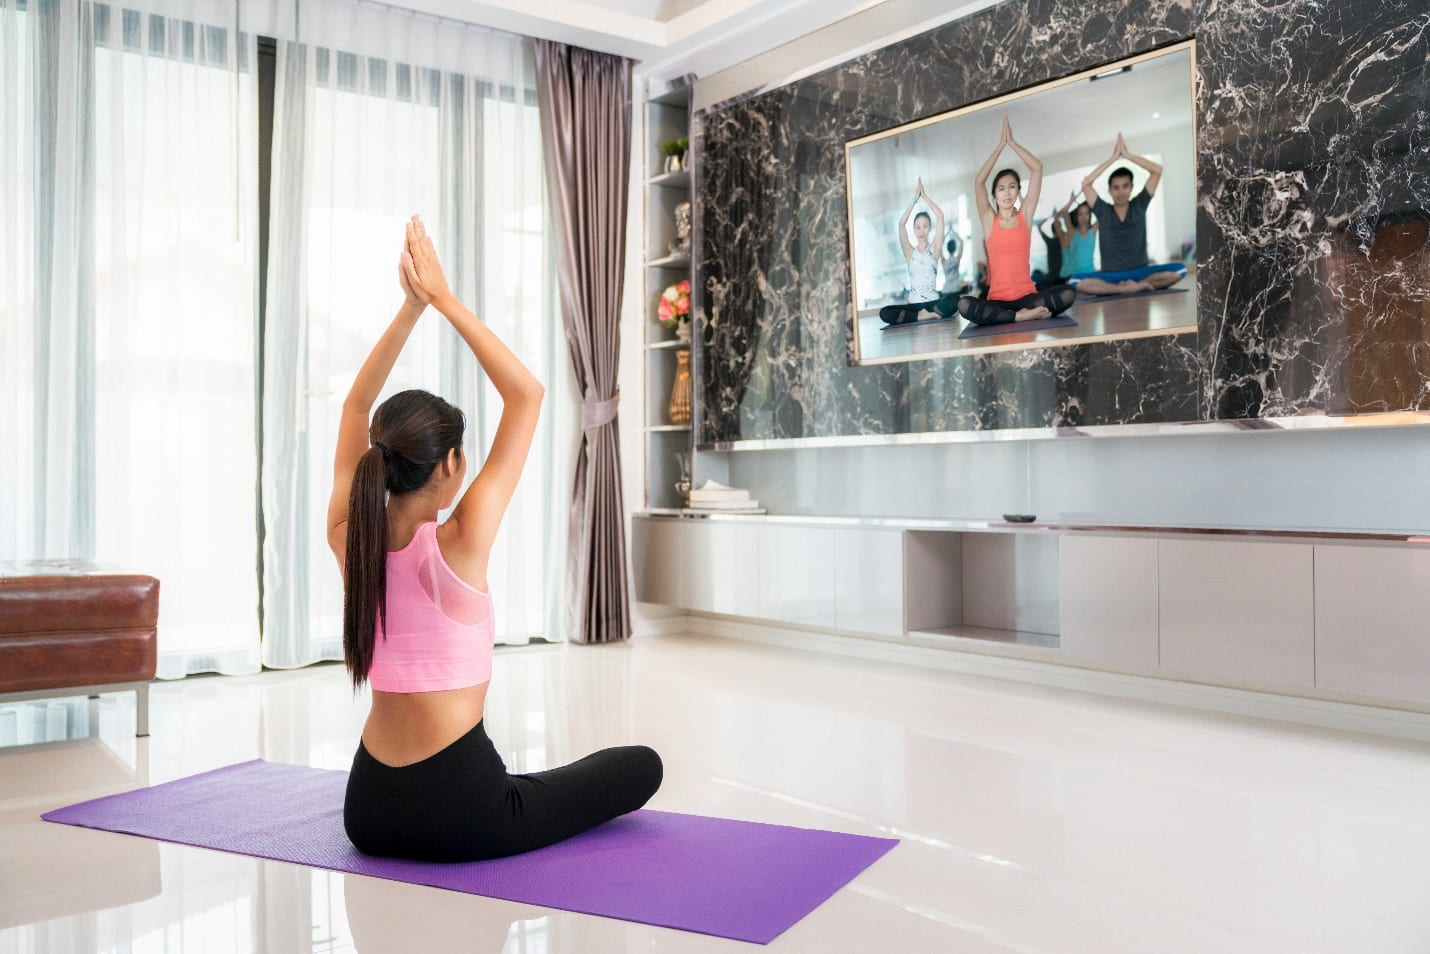 Asian lady training Yoga by follow coach in television in living room